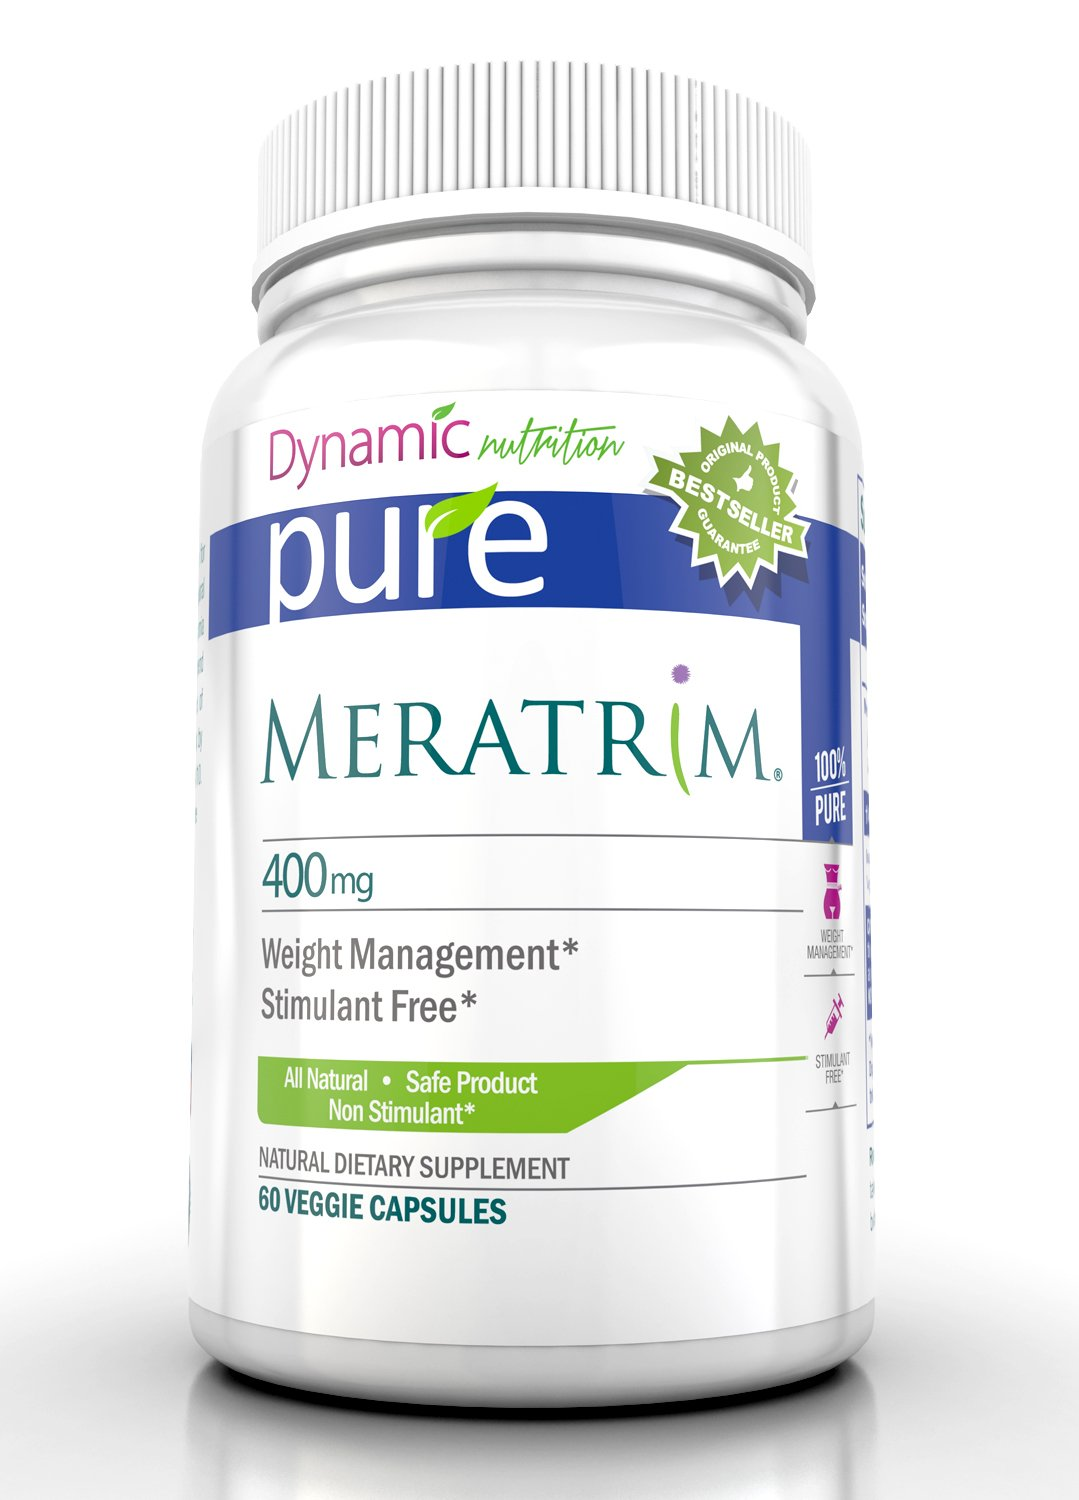 Meratrim Pure Weight Loss Slimming Formula 400mg Daily, Patent Pending Formula Clinically Proven to Lose Weight Starting in 2 Weeks, Stimulant Free - 60 Count - This Offer Is for One Bottle Manufactured in a USA Based GMP Organic Certified Facility- Guar gmp certified inflammation relieving natural 98